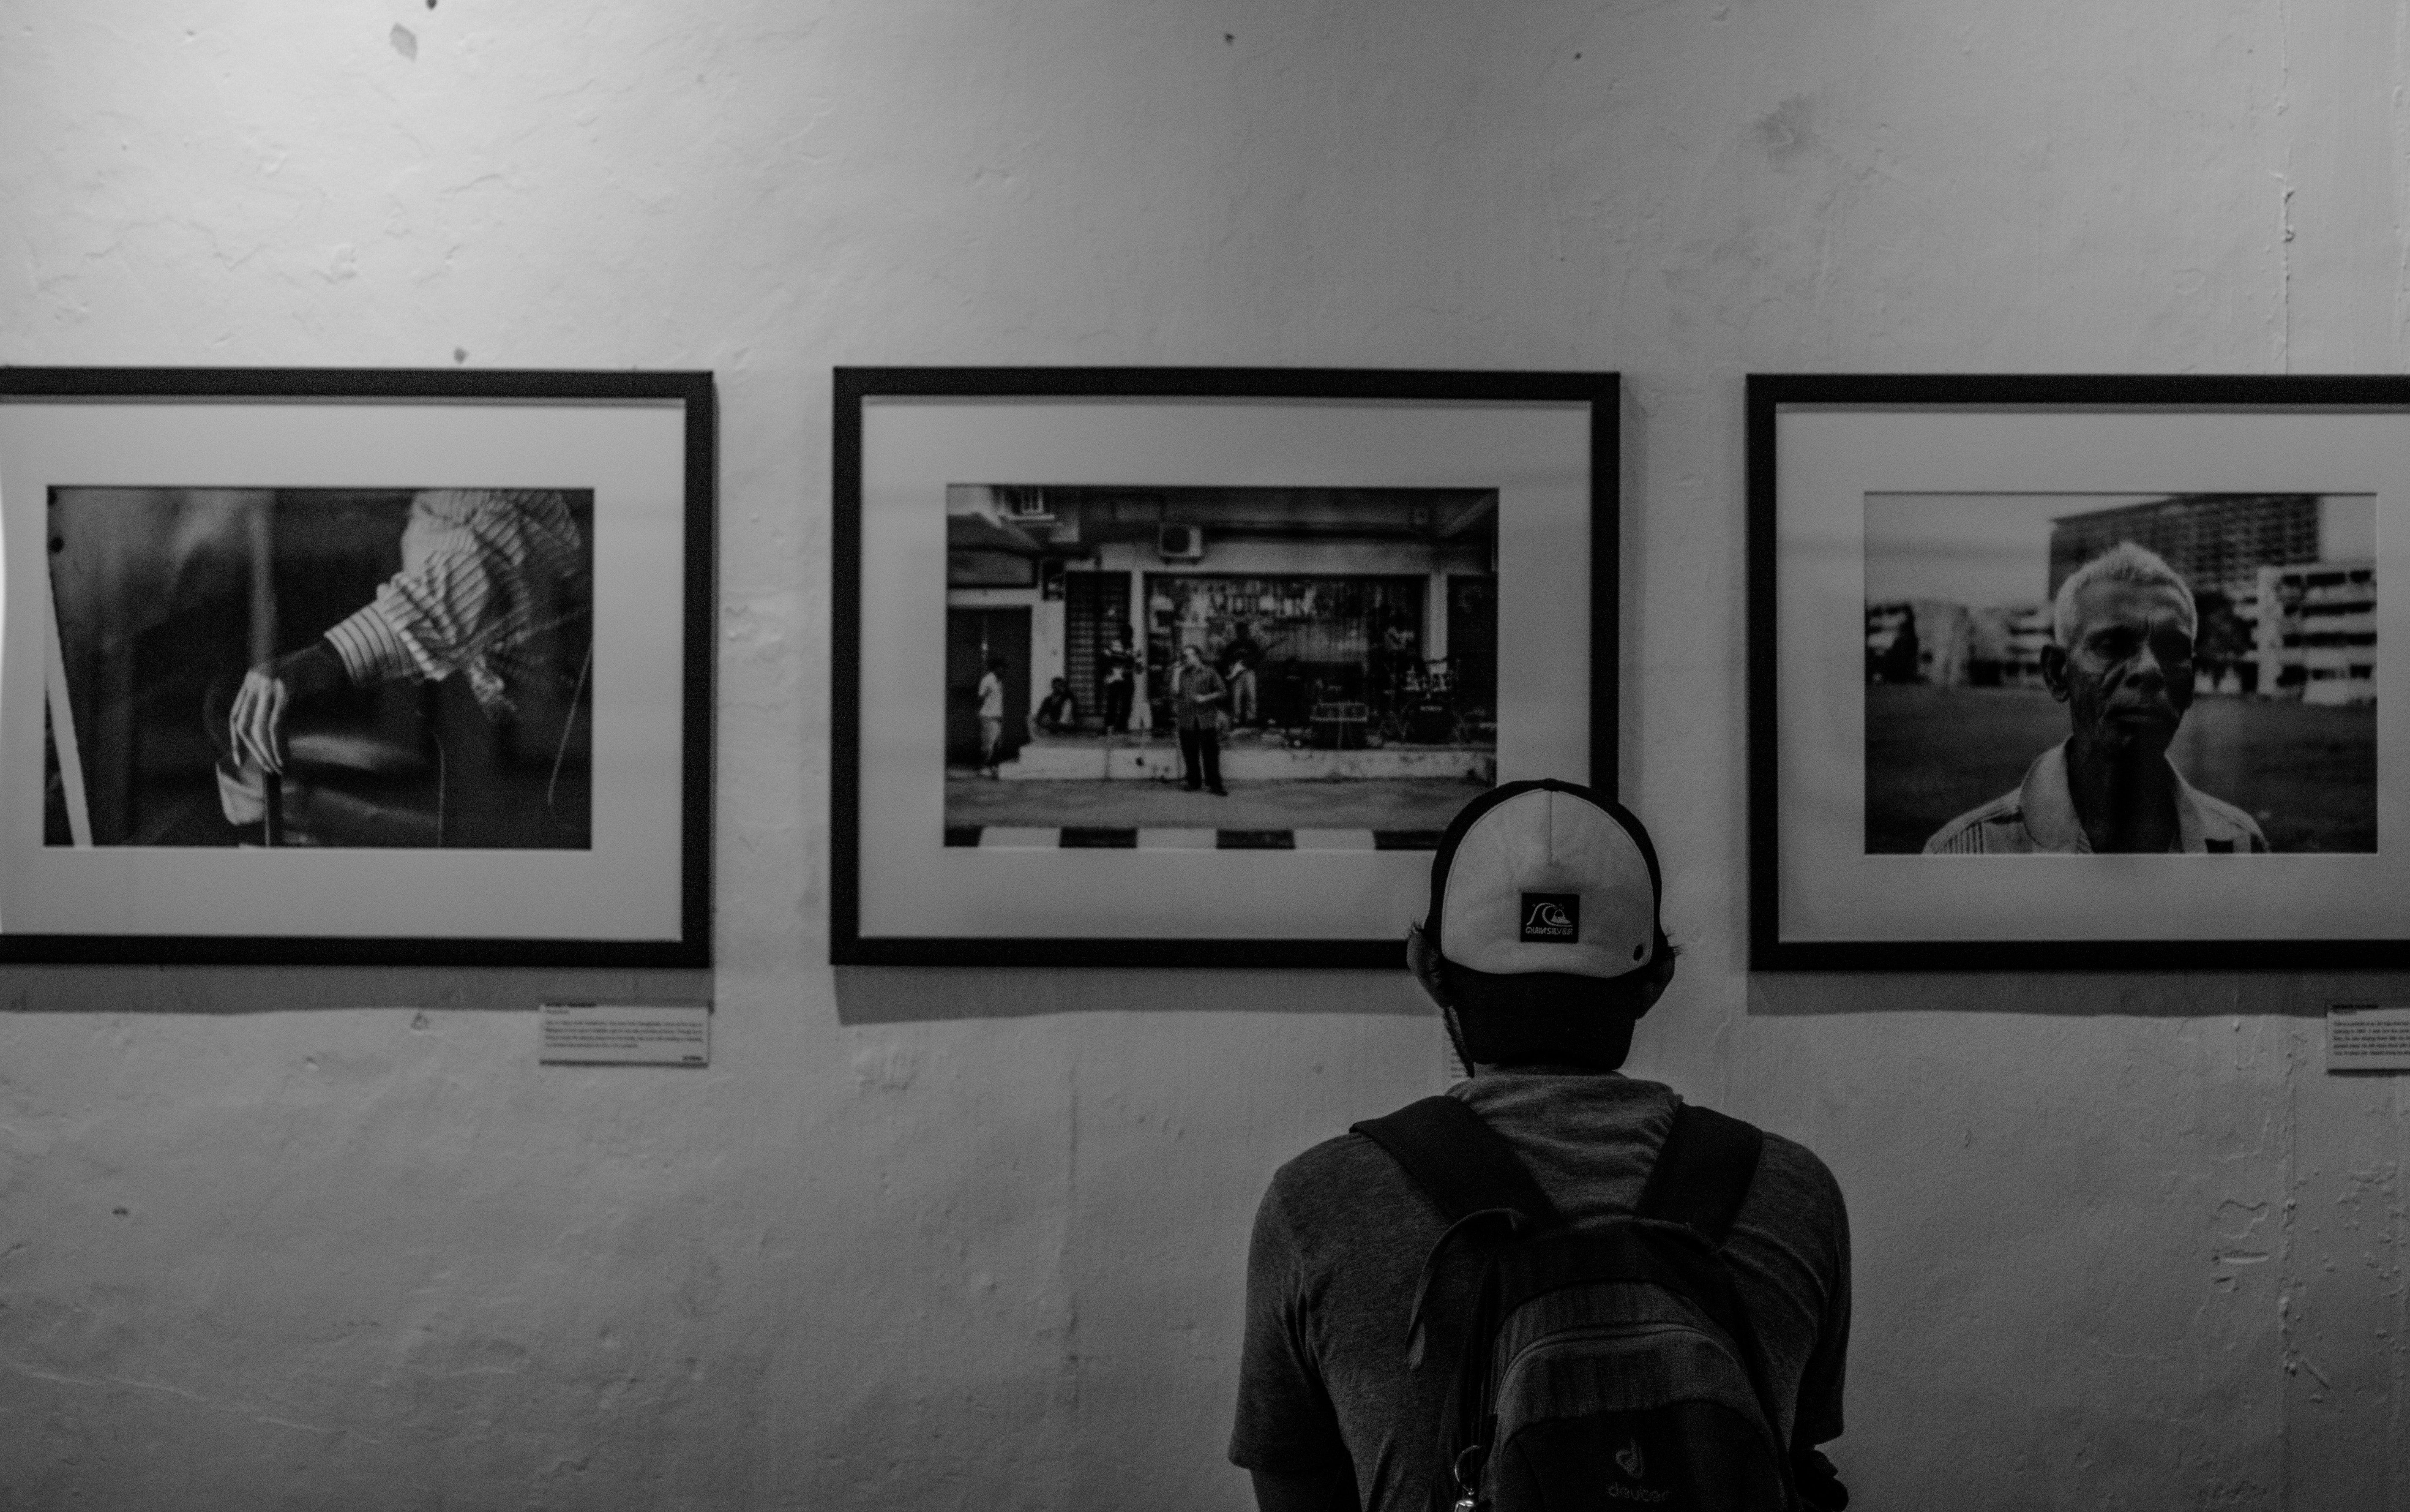 Grayscale photo of man wearing white cap in front of three paintings painting museum